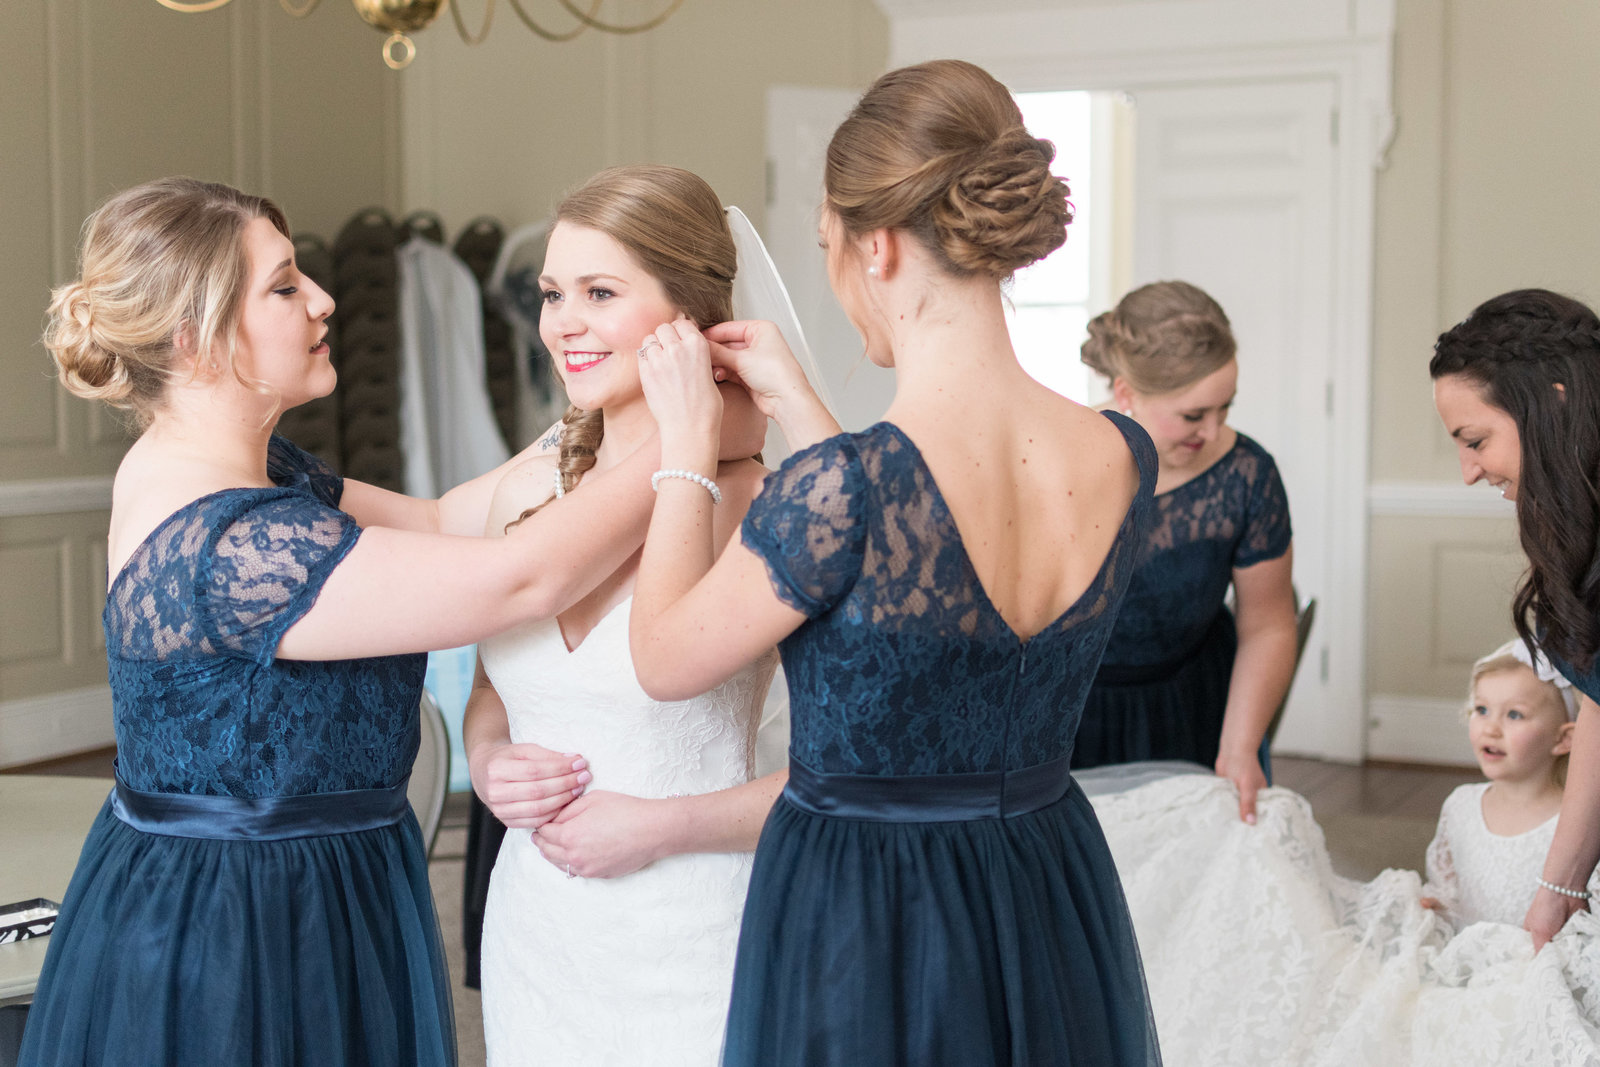 charlotte wedding photographer shot of bride getting ready with bridesmaids